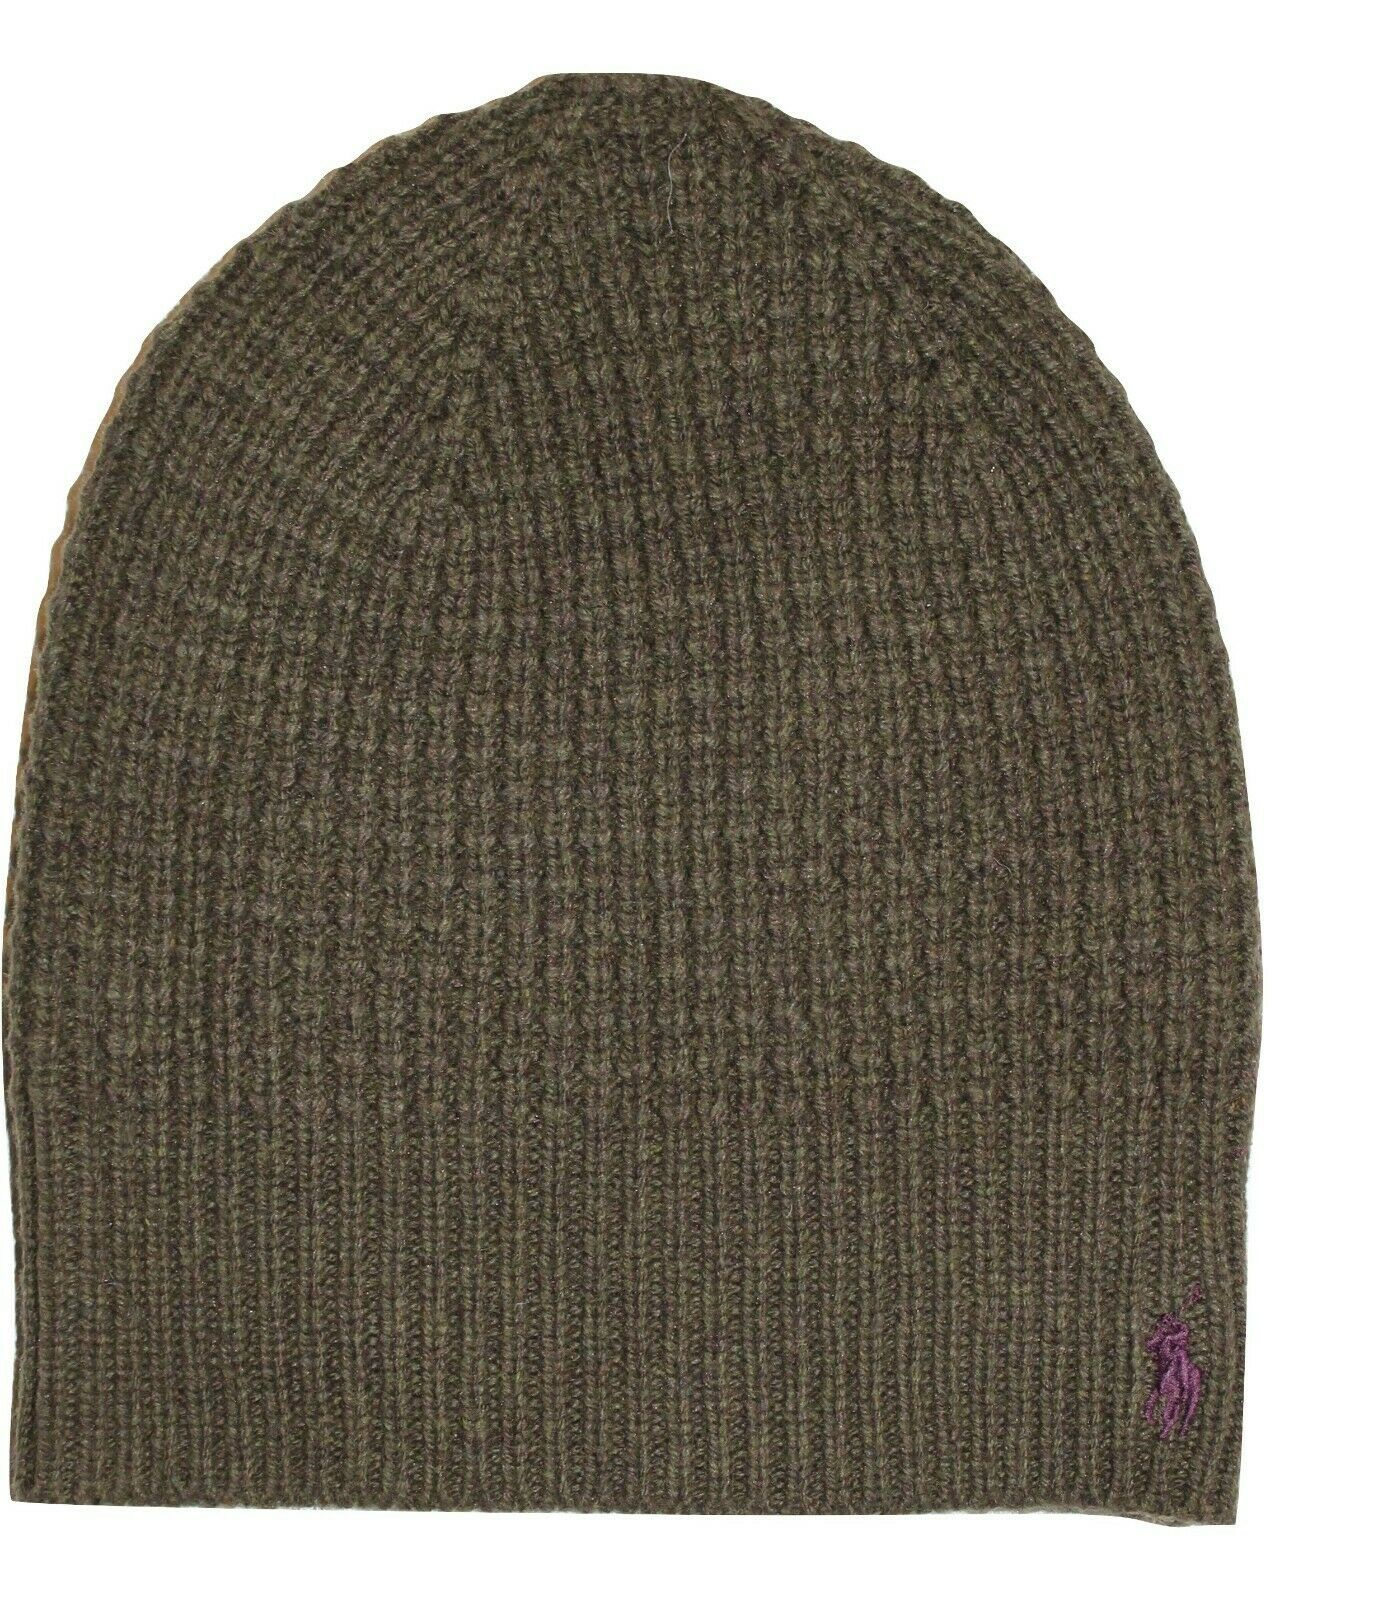 ad669e677 Polo Ralph Lauren Hat: 1 customer review and 181 listings